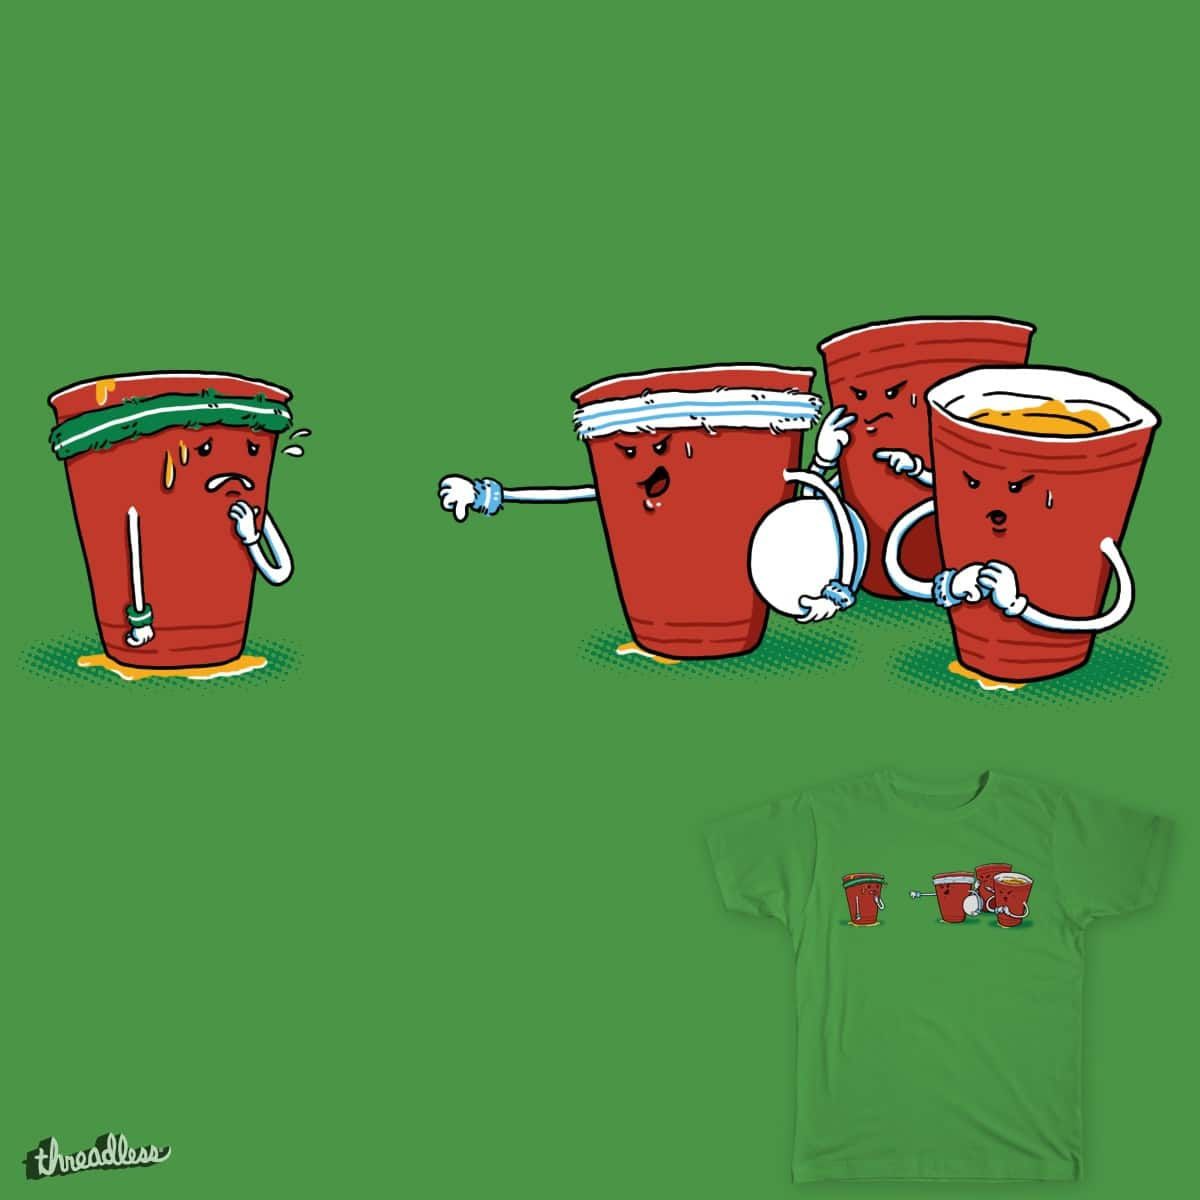 Beer pong by lumad on Threadless